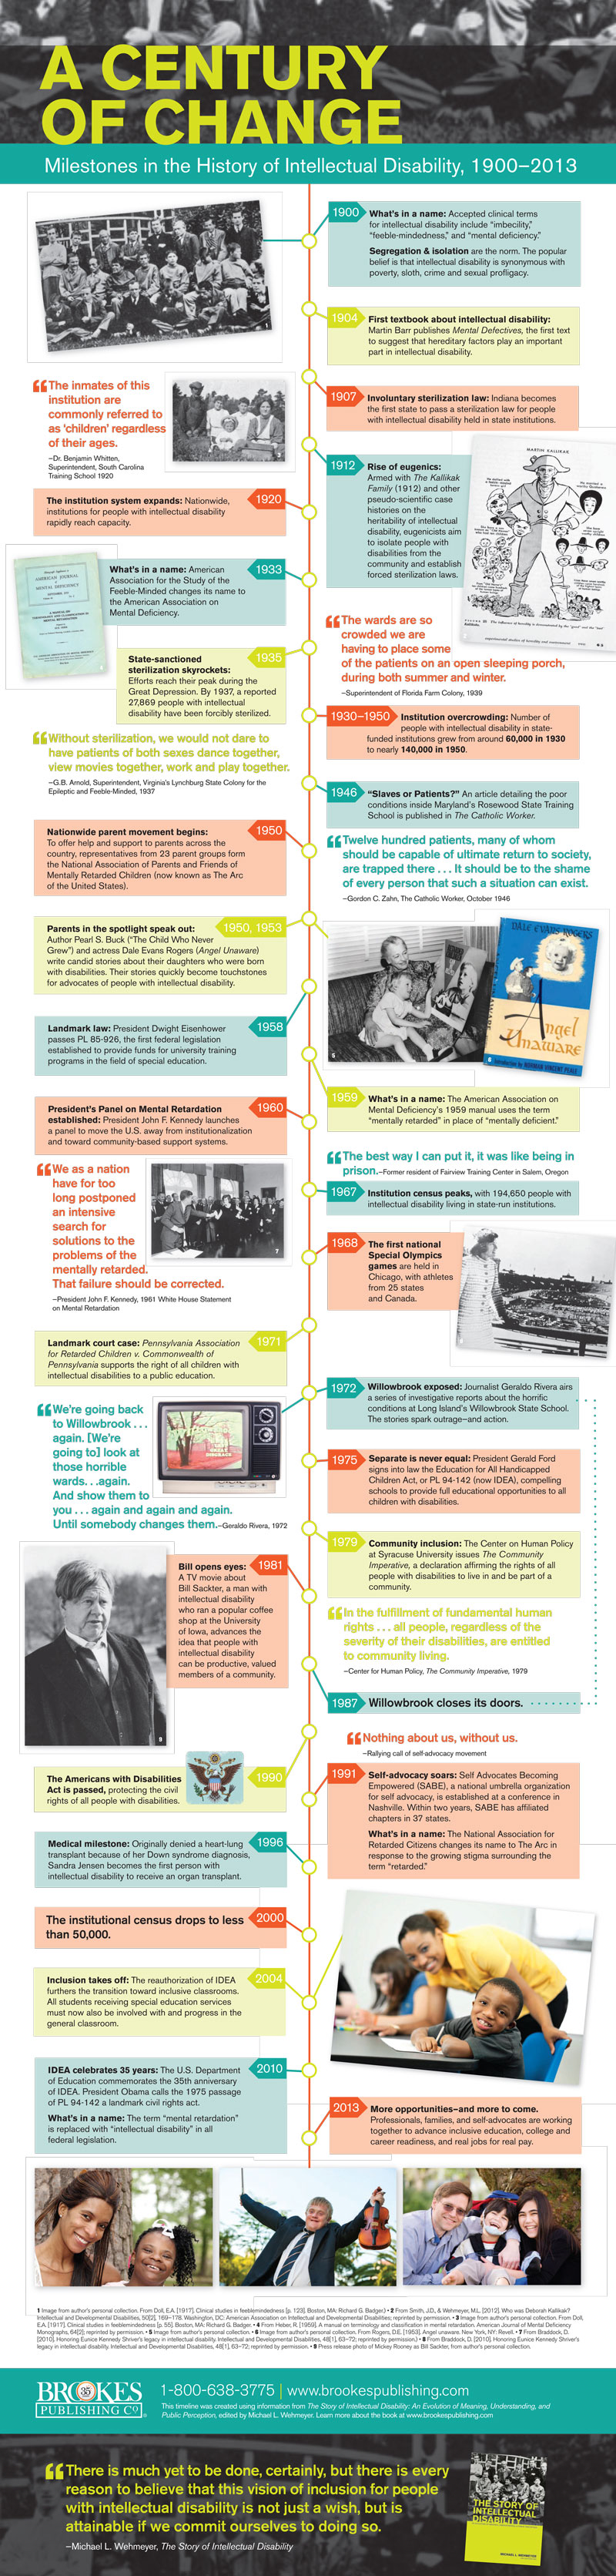 Milestones in the History of Intellectual Disability